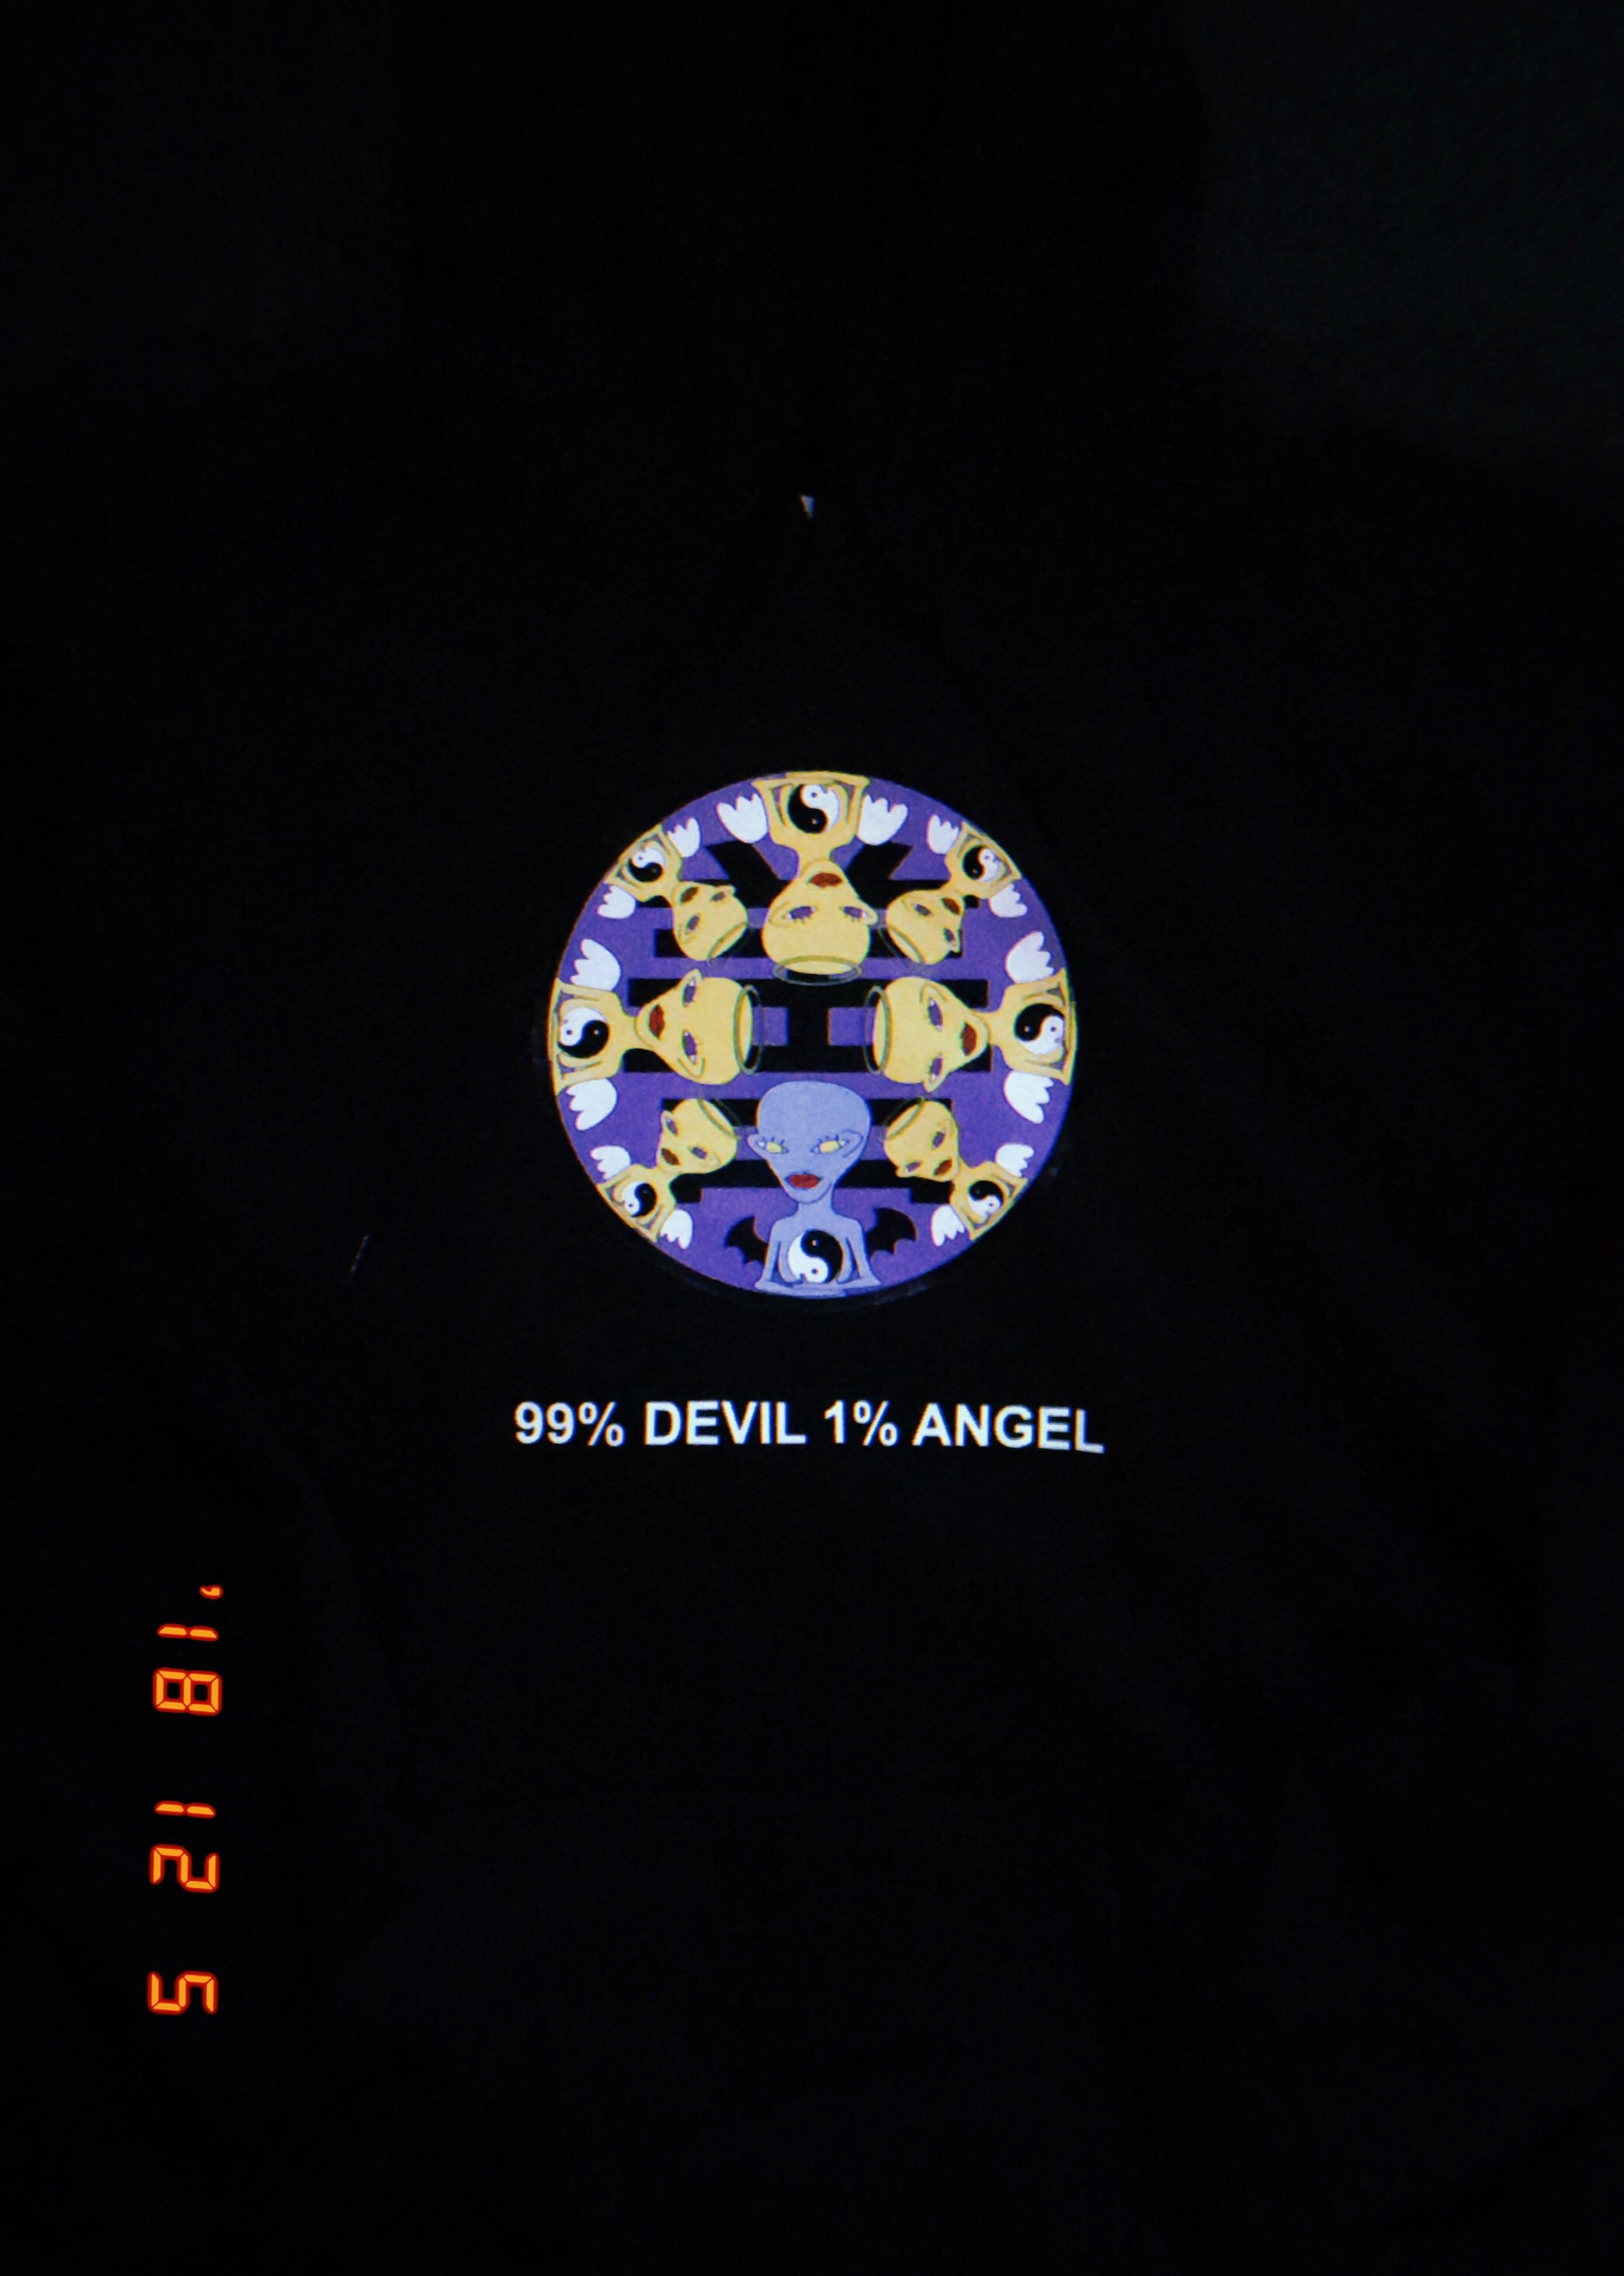 99% DEVIL 1% ANGEL